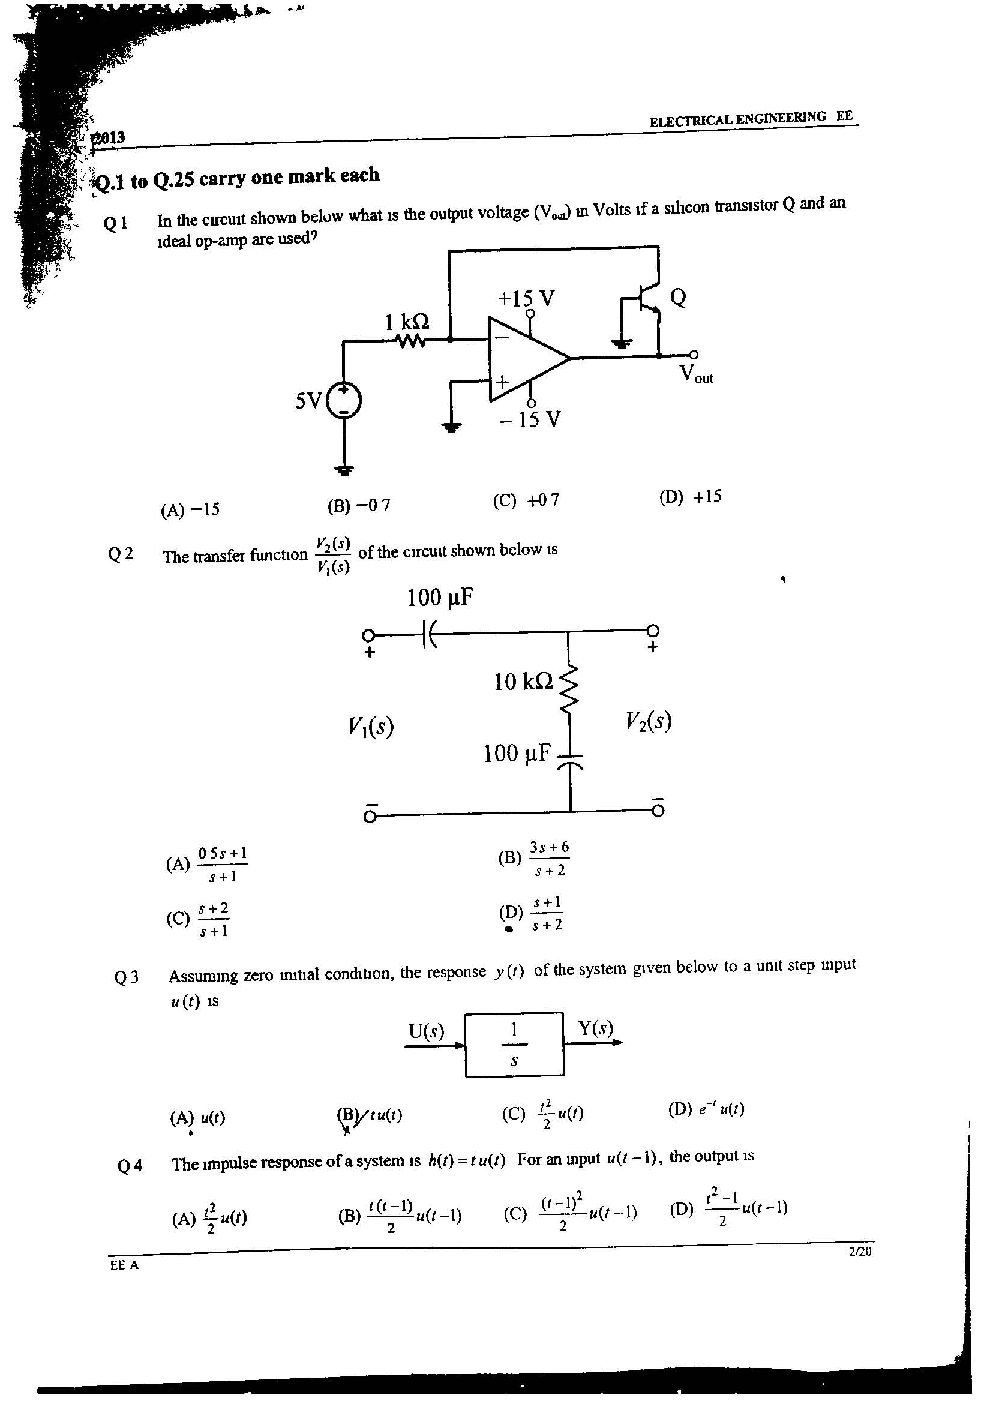 cpt question paper december 2013 with answers pdf